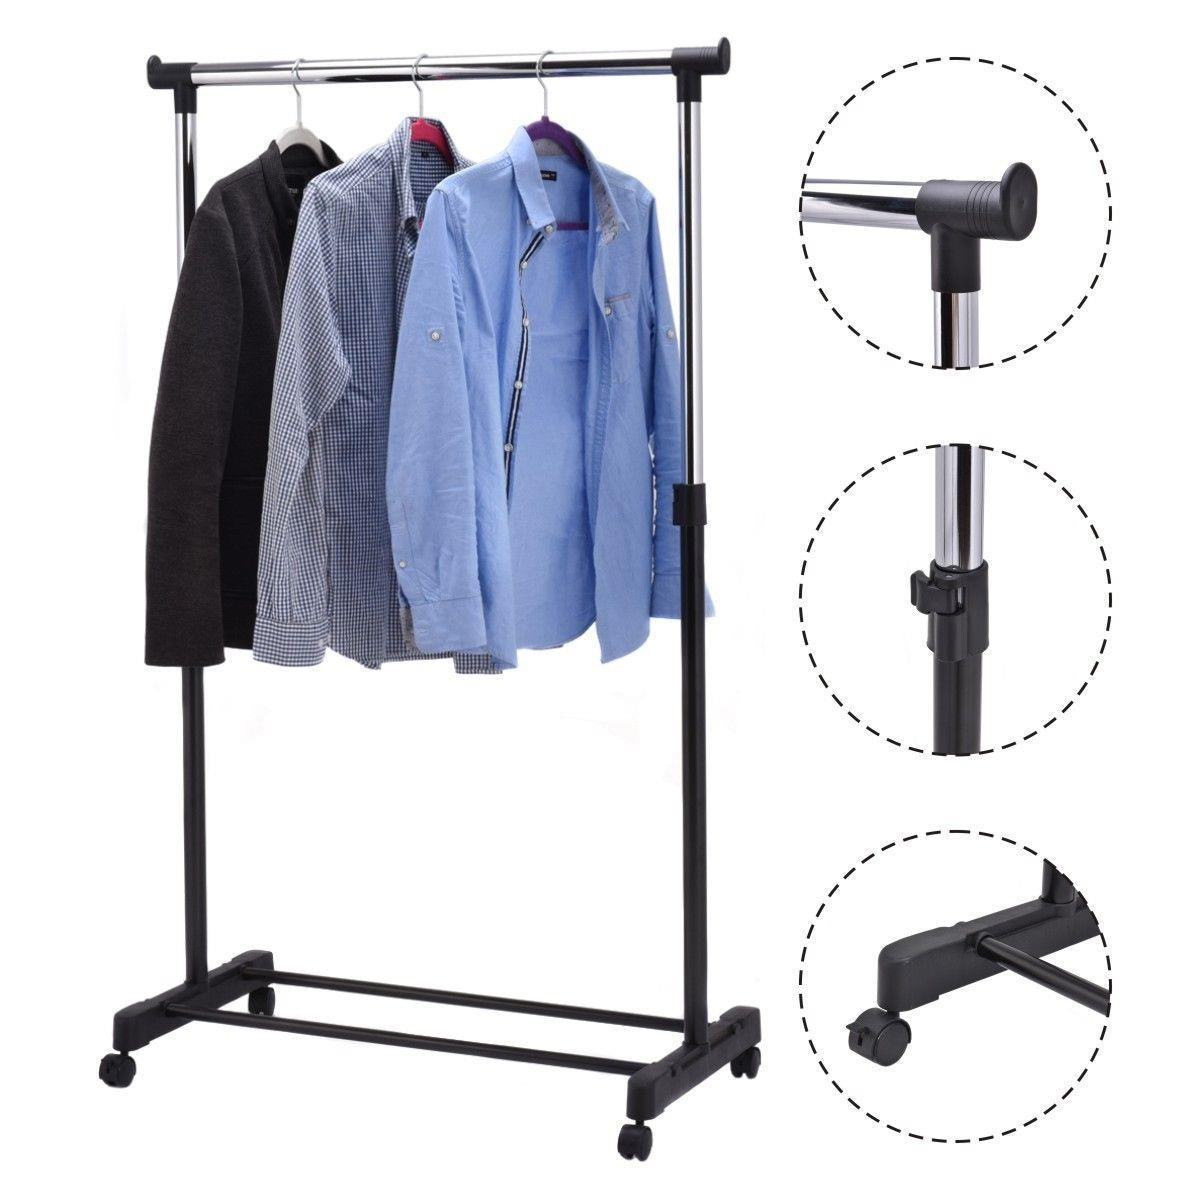 details about new portable rolling clothes rack single hanging garment bar heavy duty hanger